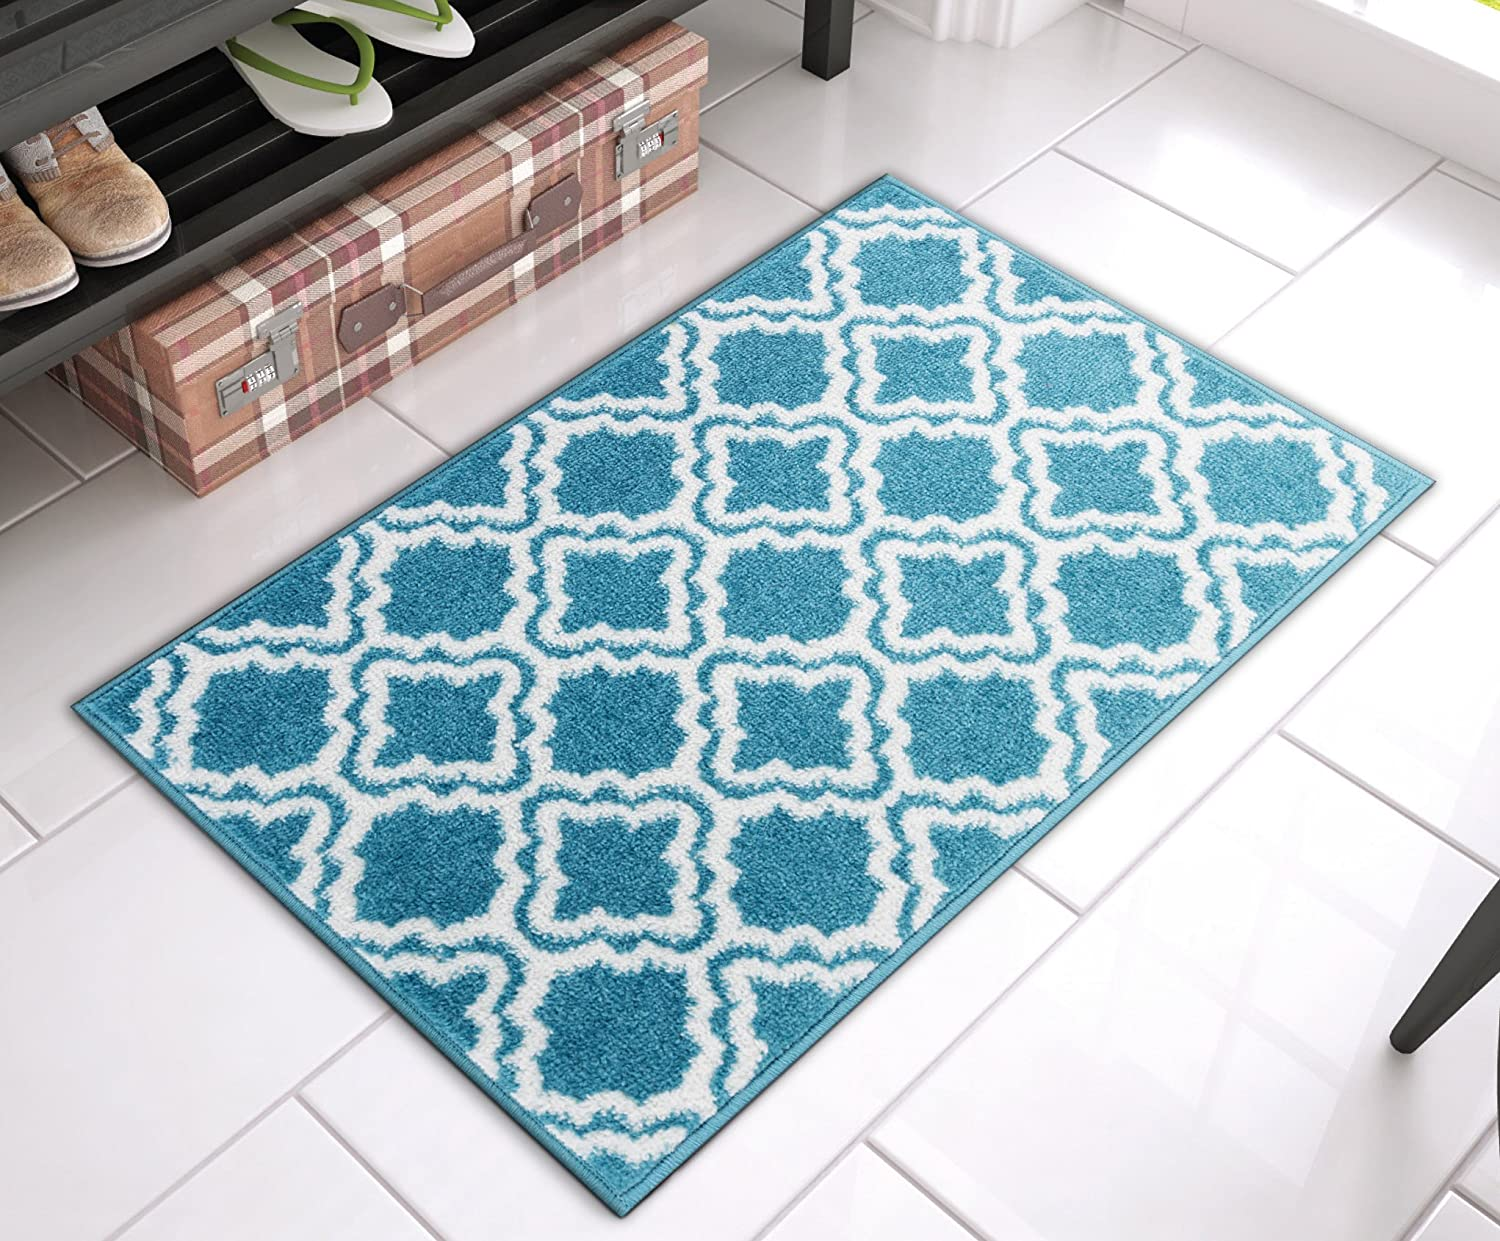 "Well Woven Bright StarBright Blue Calipso Modern Geometric Trellis 20"" x 31"" Mat Accent Area Rug"